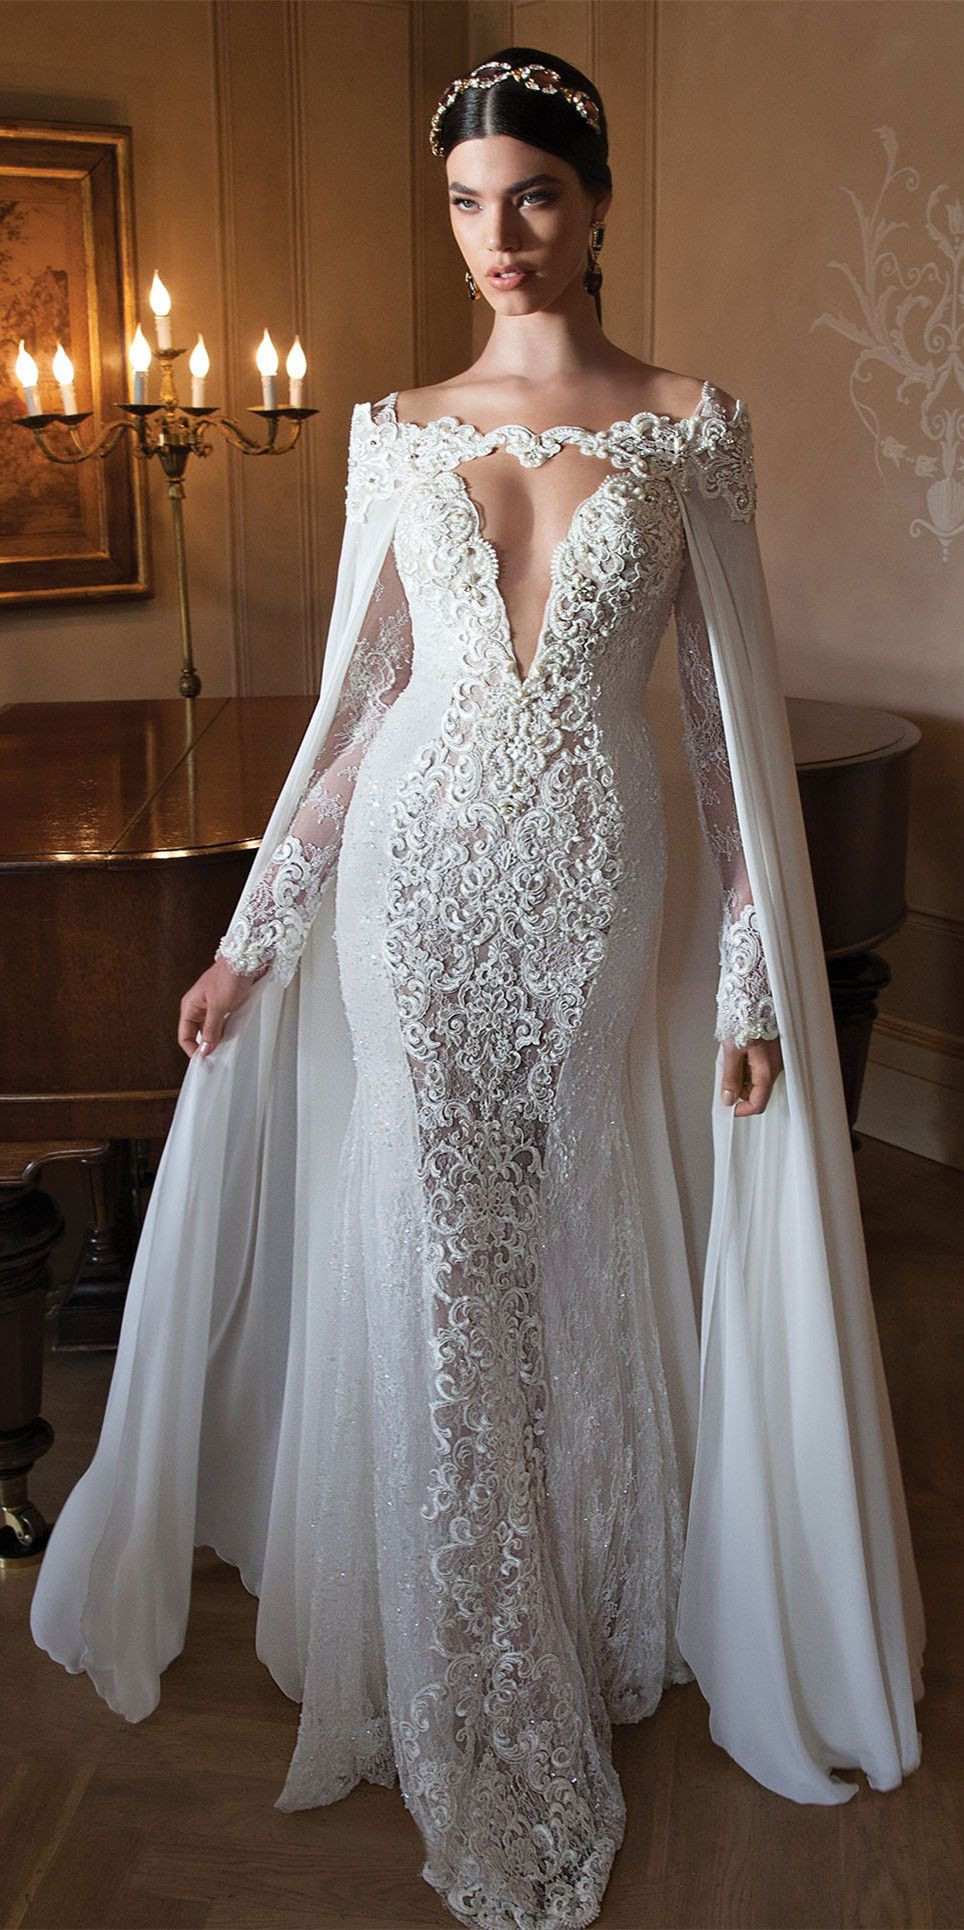 Best wedding dresses of 2014 vestidos de noiva vestido e casamento best wedding dresses of 2014 junglespirit Images